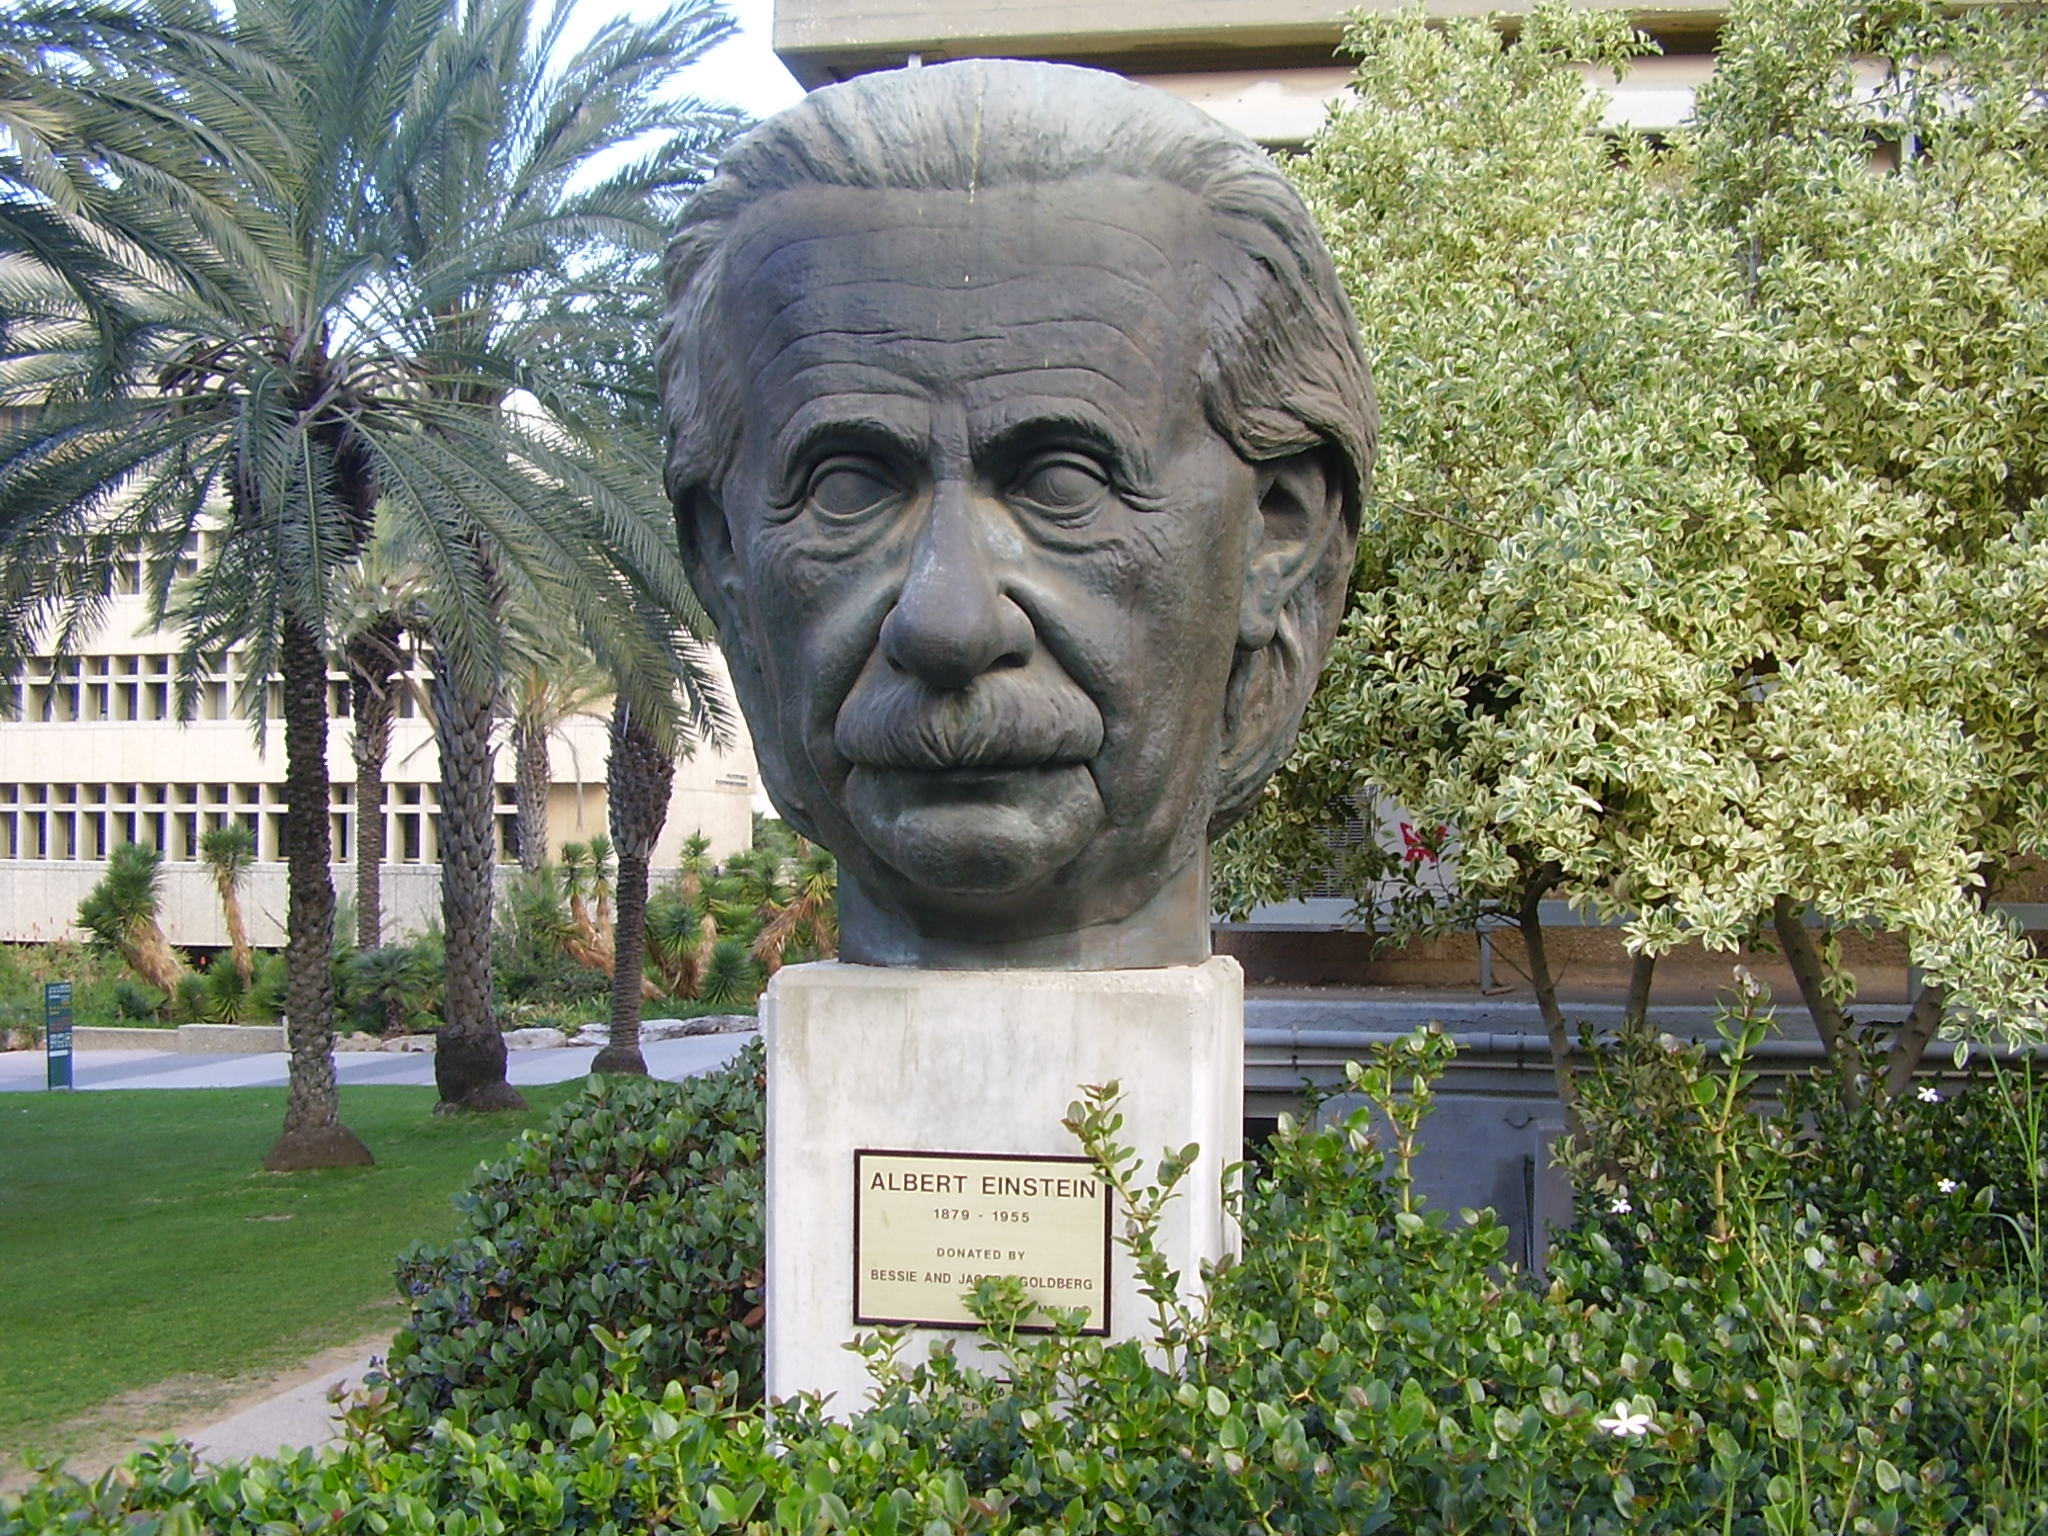 https://upload.wikimedia.org/wikipedia/commons/4/4f/PikiWiki_Israel_6868_statue_of_albert_einstein.jpg